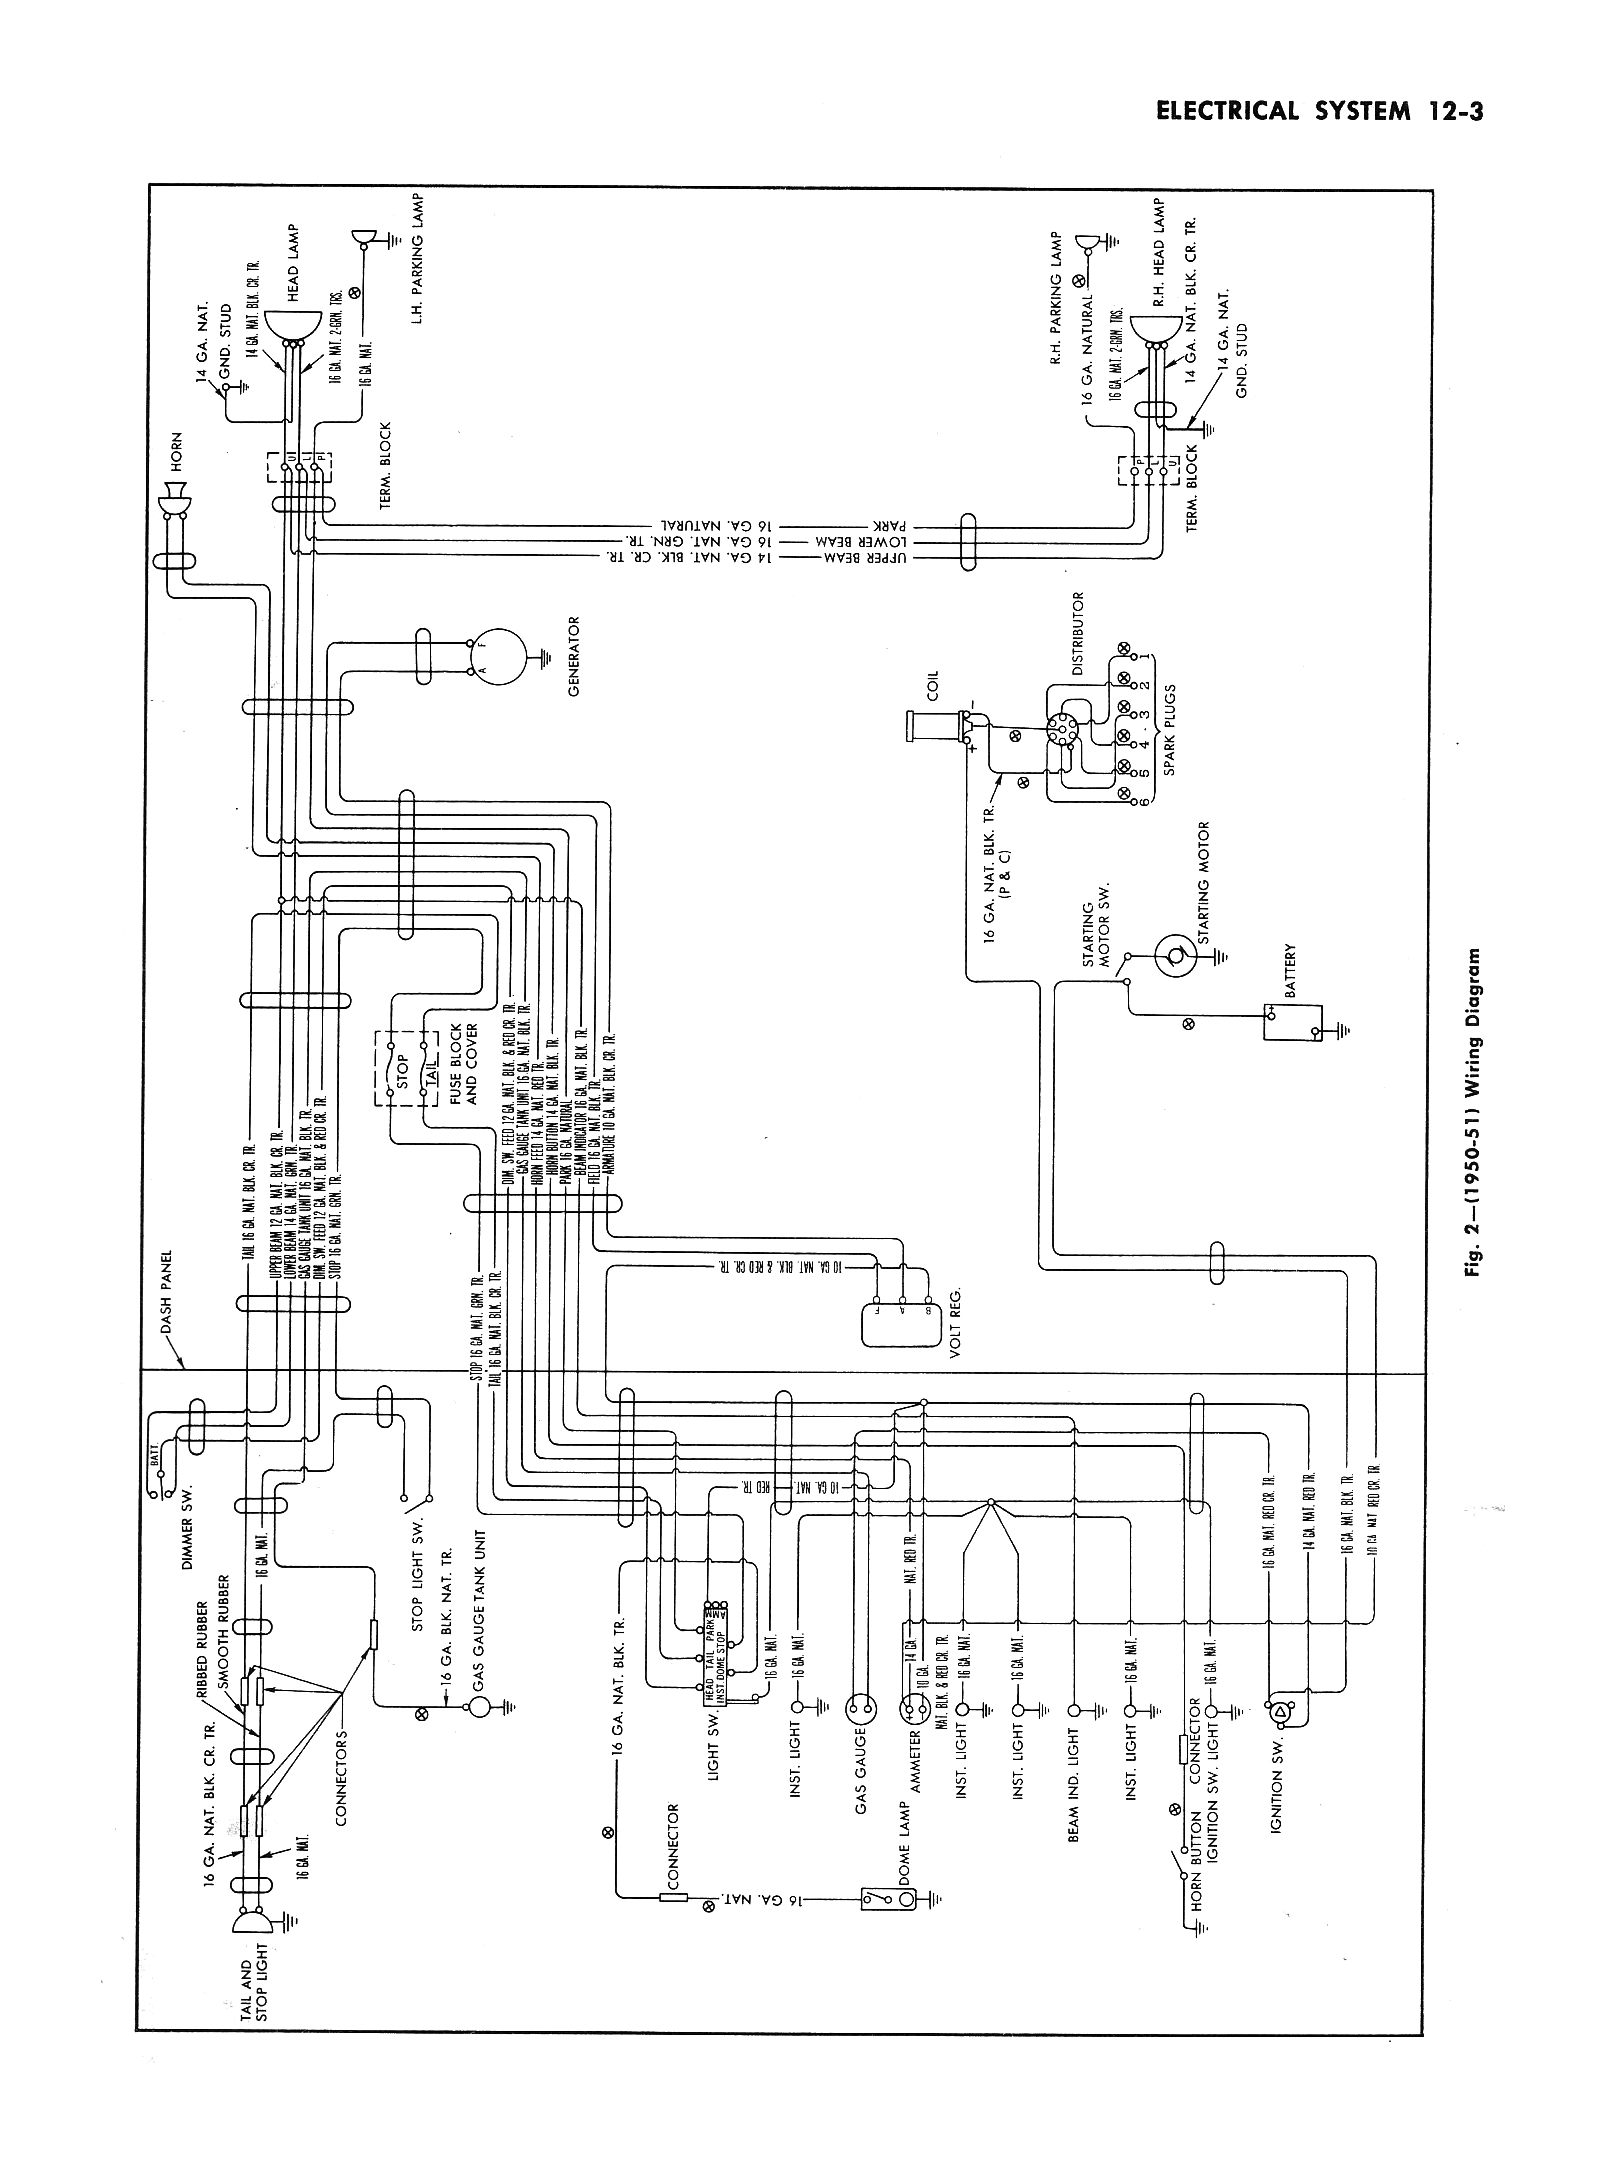 hight resolution of 1970 cadillac deville gas guage wiring diagram trusted wiring 1994 cadillac schematics 1951 cadillac wiring diagram